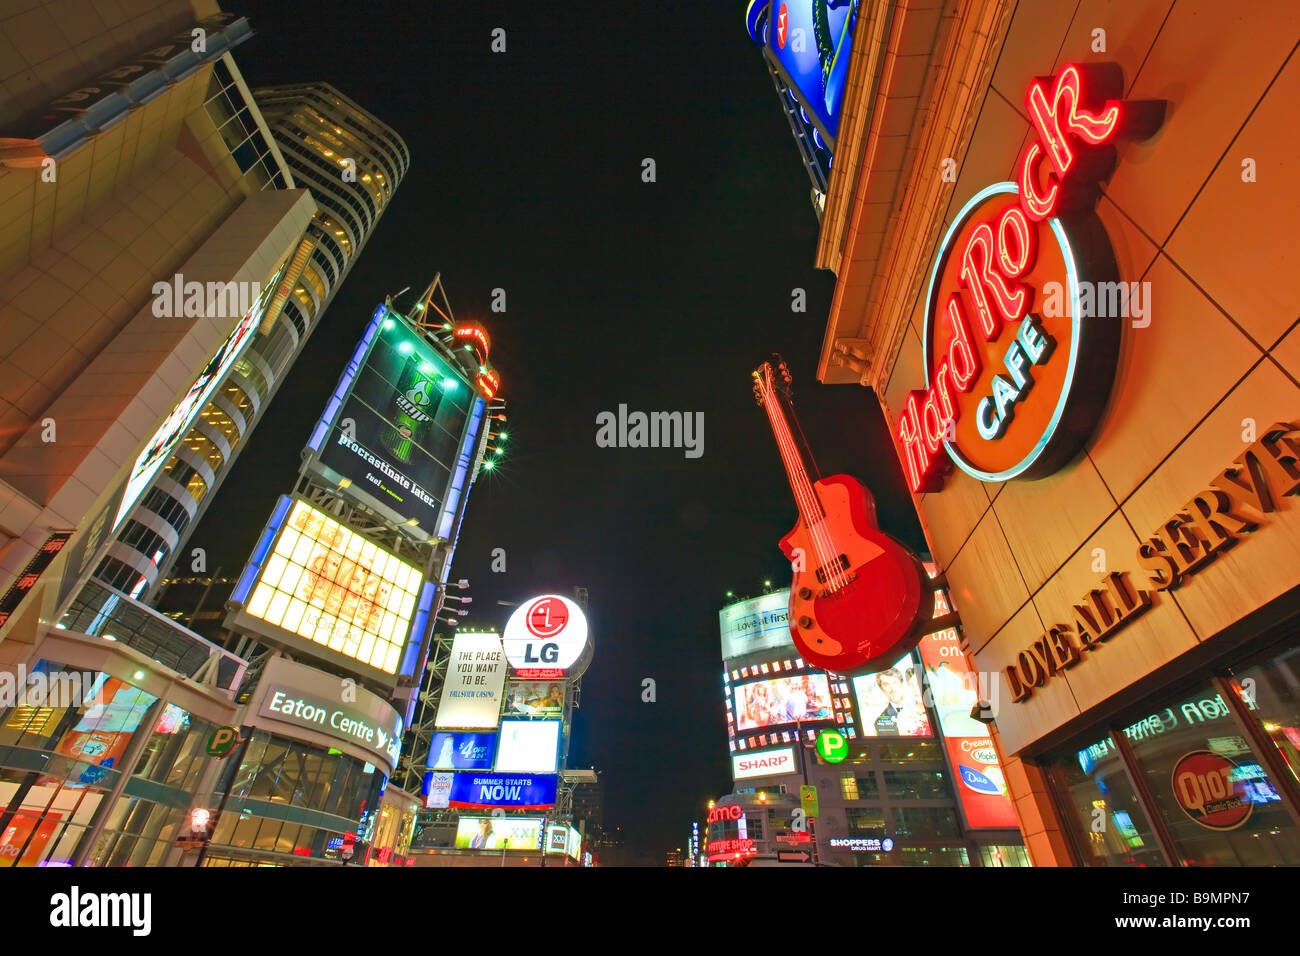 Eaton Centre, Hard Rock Cafe and Yonge Dundas Square seen along Yonge Street in downtown Toronto at night Ontario - Stock Image